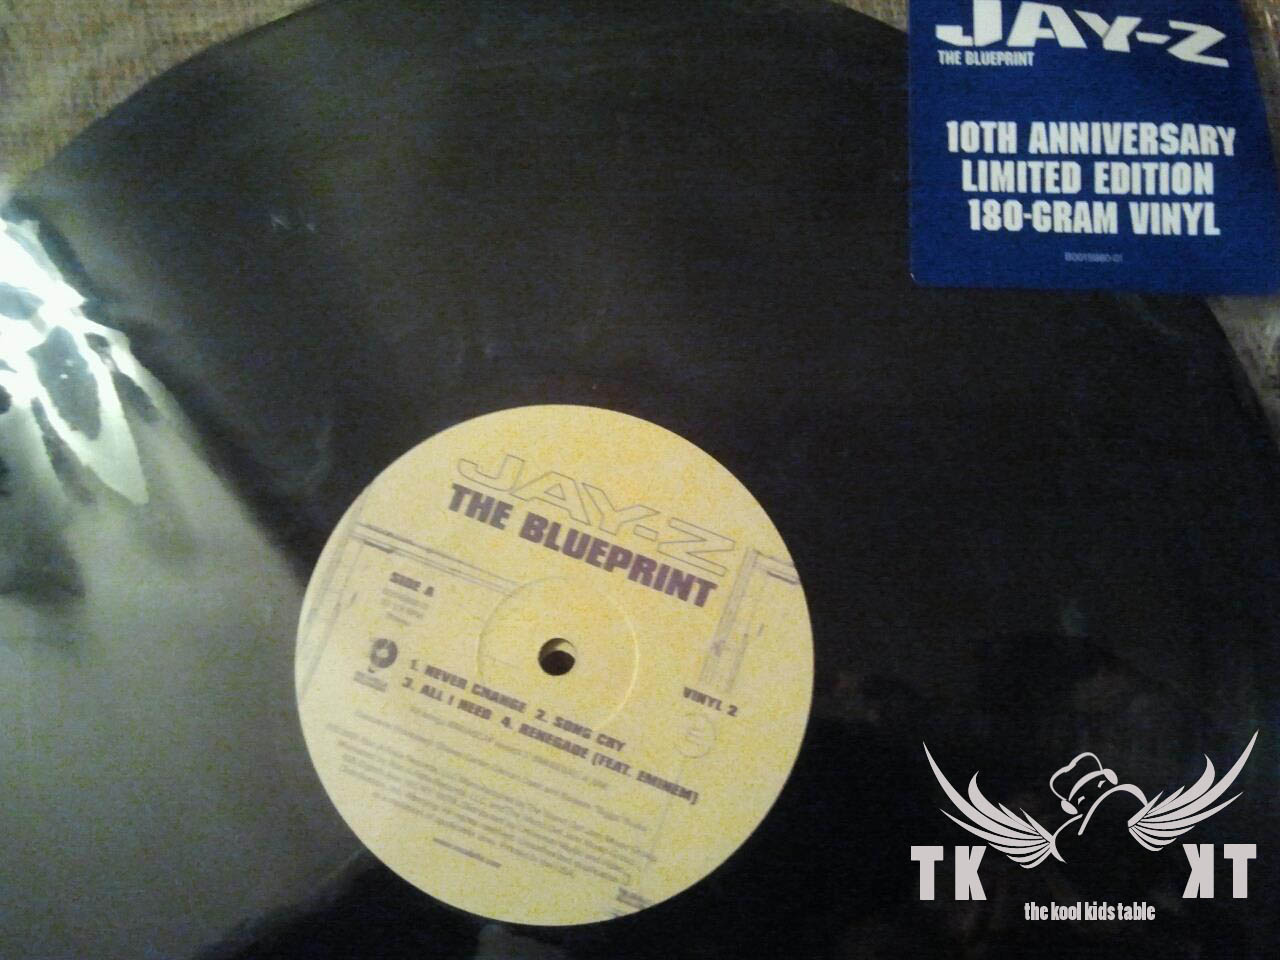 Kop that jawn jay zs the blueprint 10th anniversary vinyl the kool kid prod has copped his own copy of jay zs the blueprint 10th anniversary vinyl a malvernweather